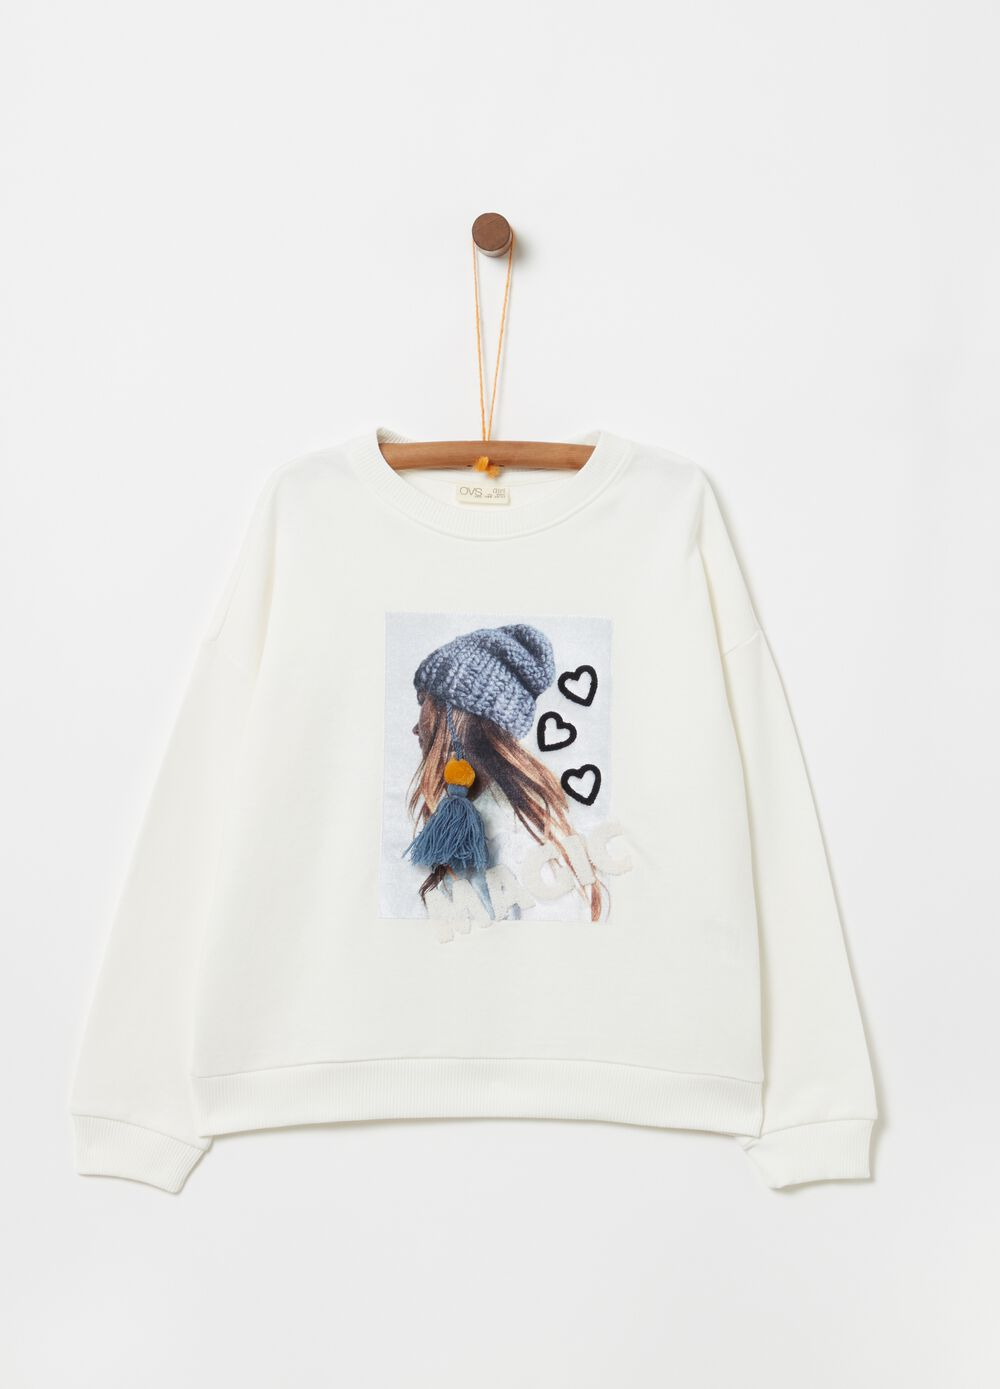 100% organic cotton sweatshirt with embroidery and print